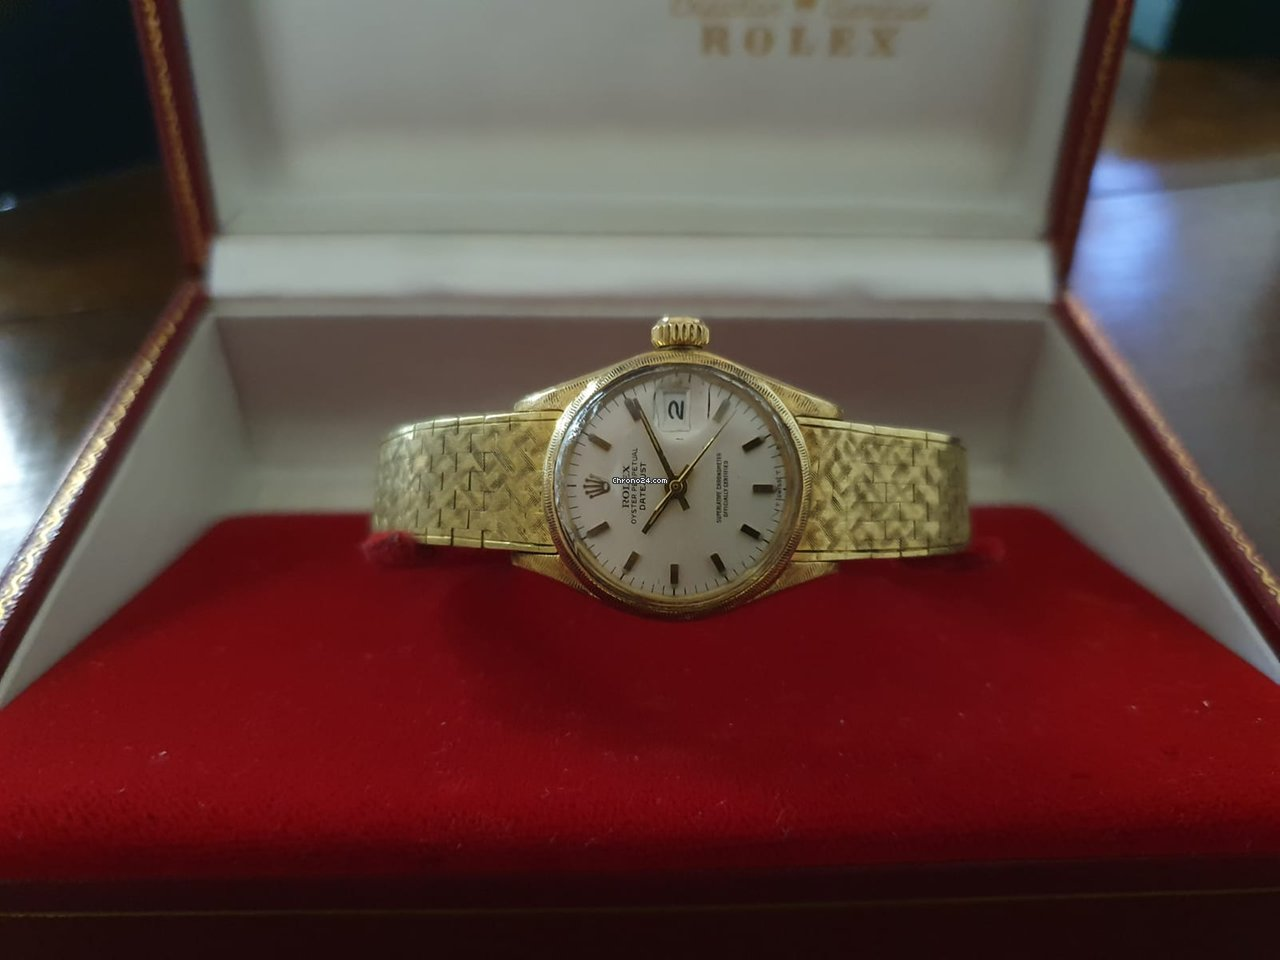 Rolex 6520 1970 pre-owned